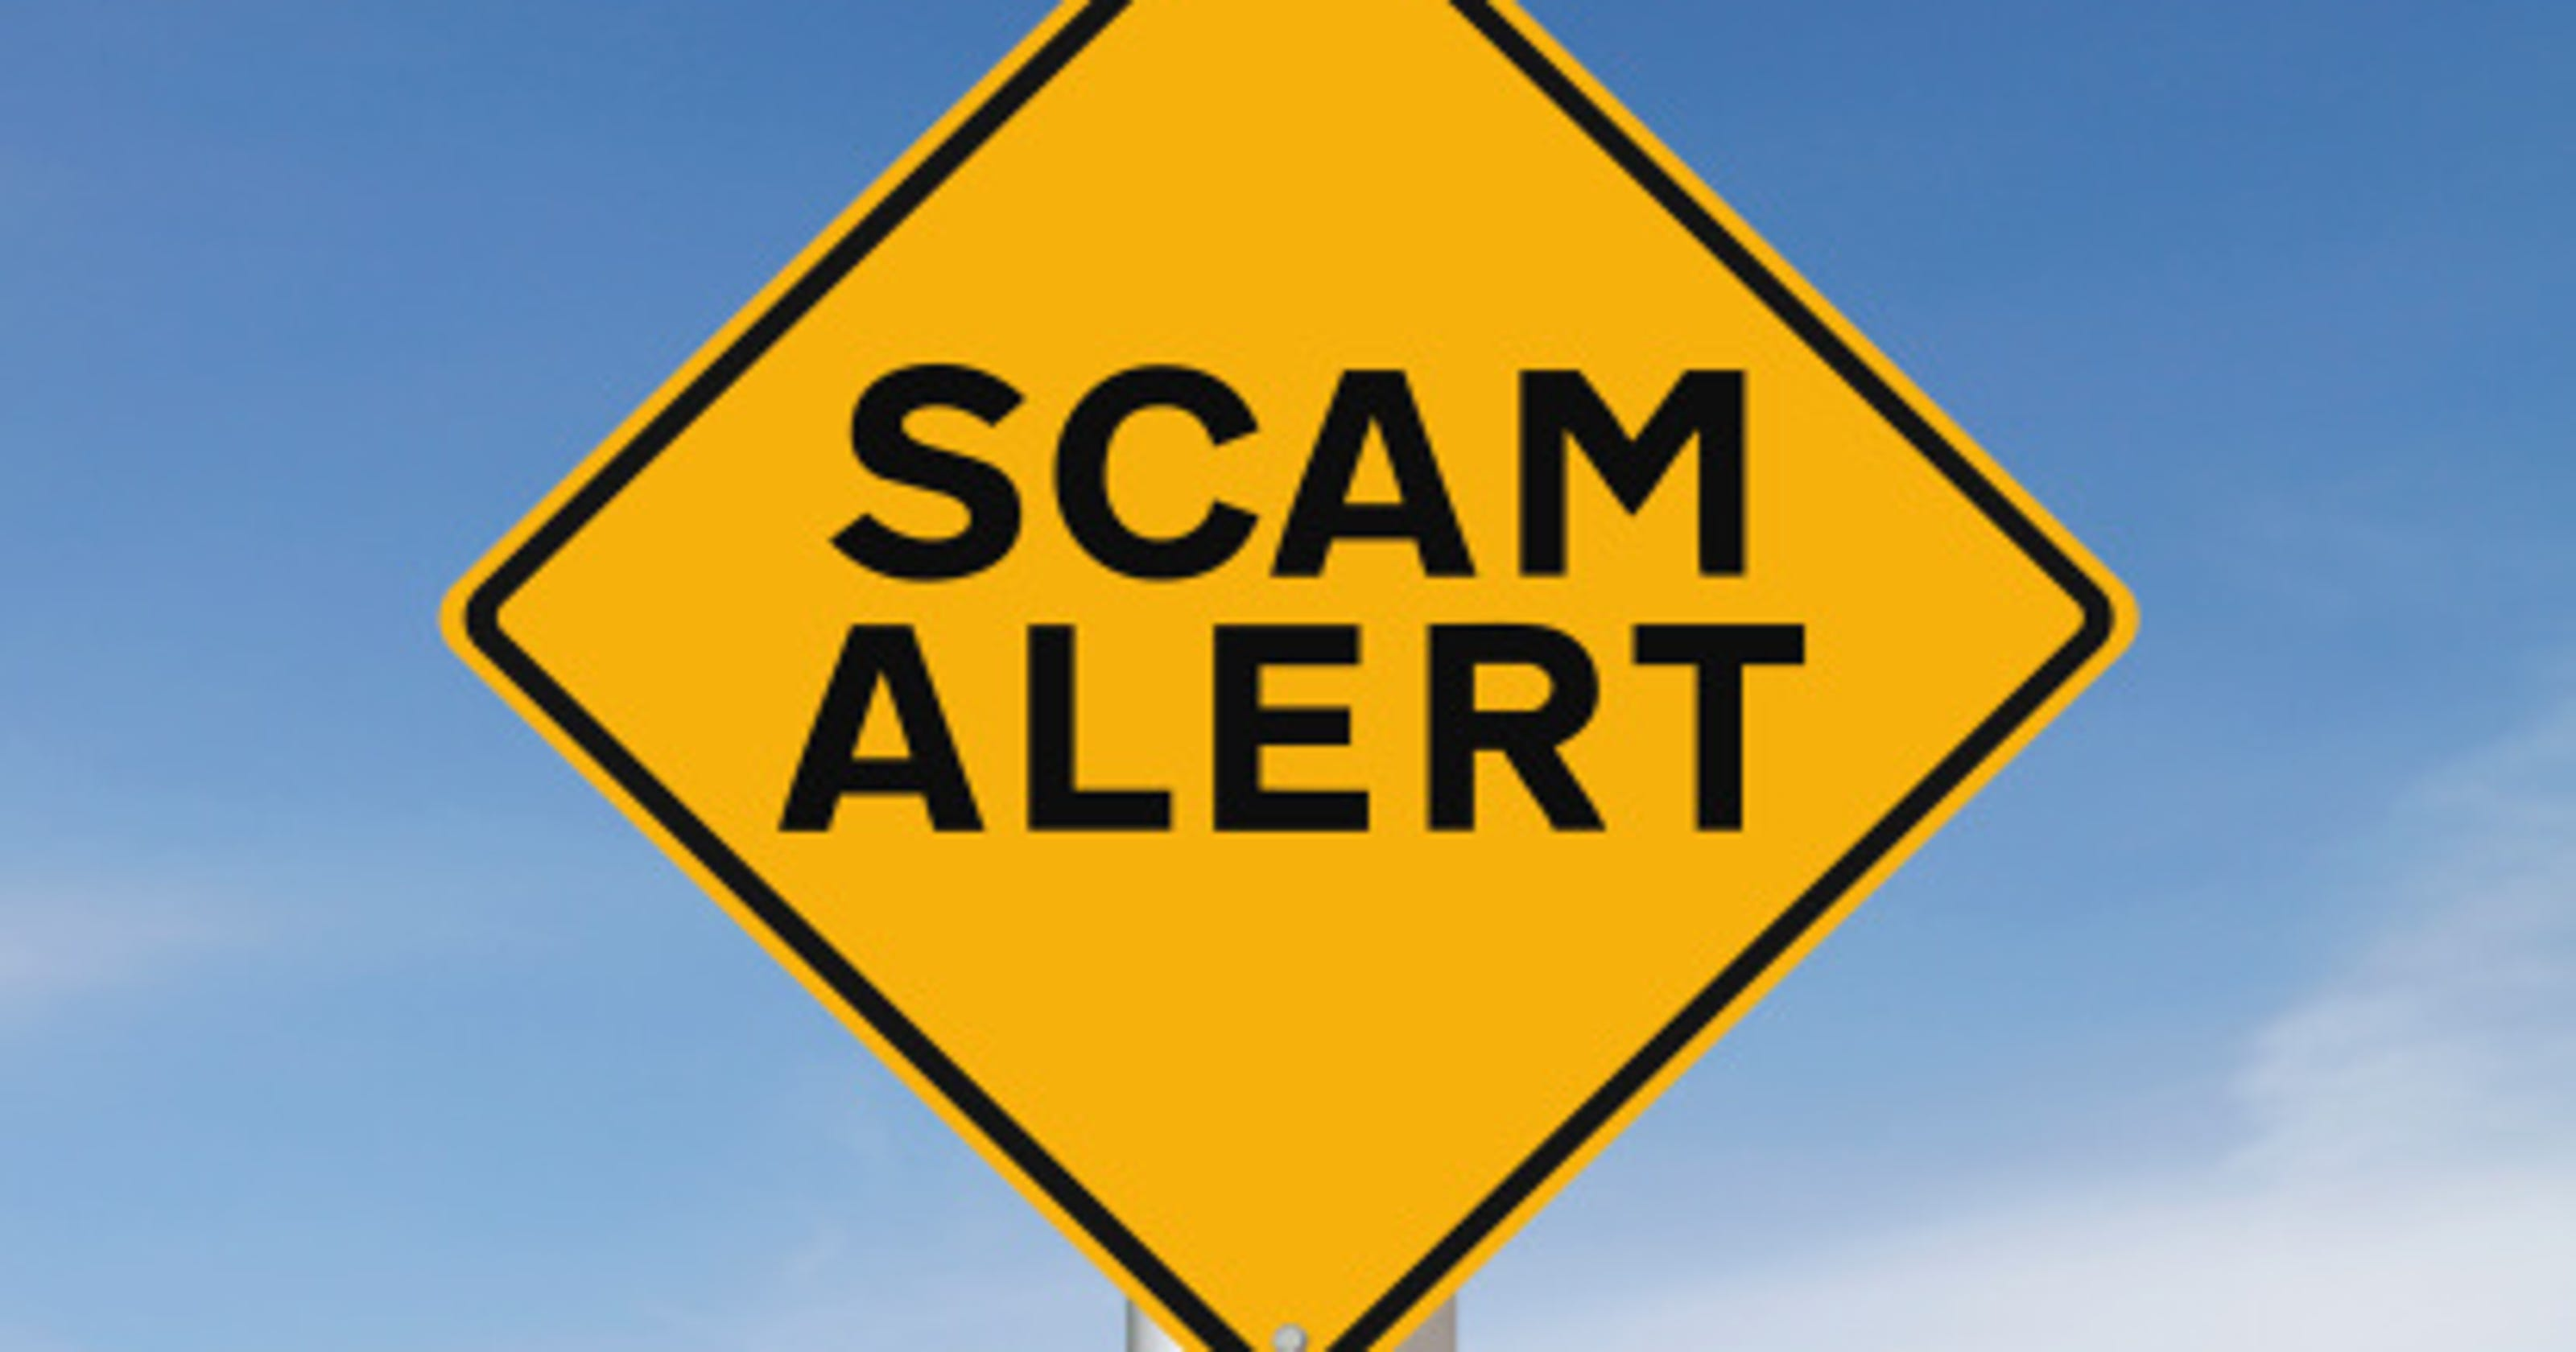 Sheriff's department warns of scam